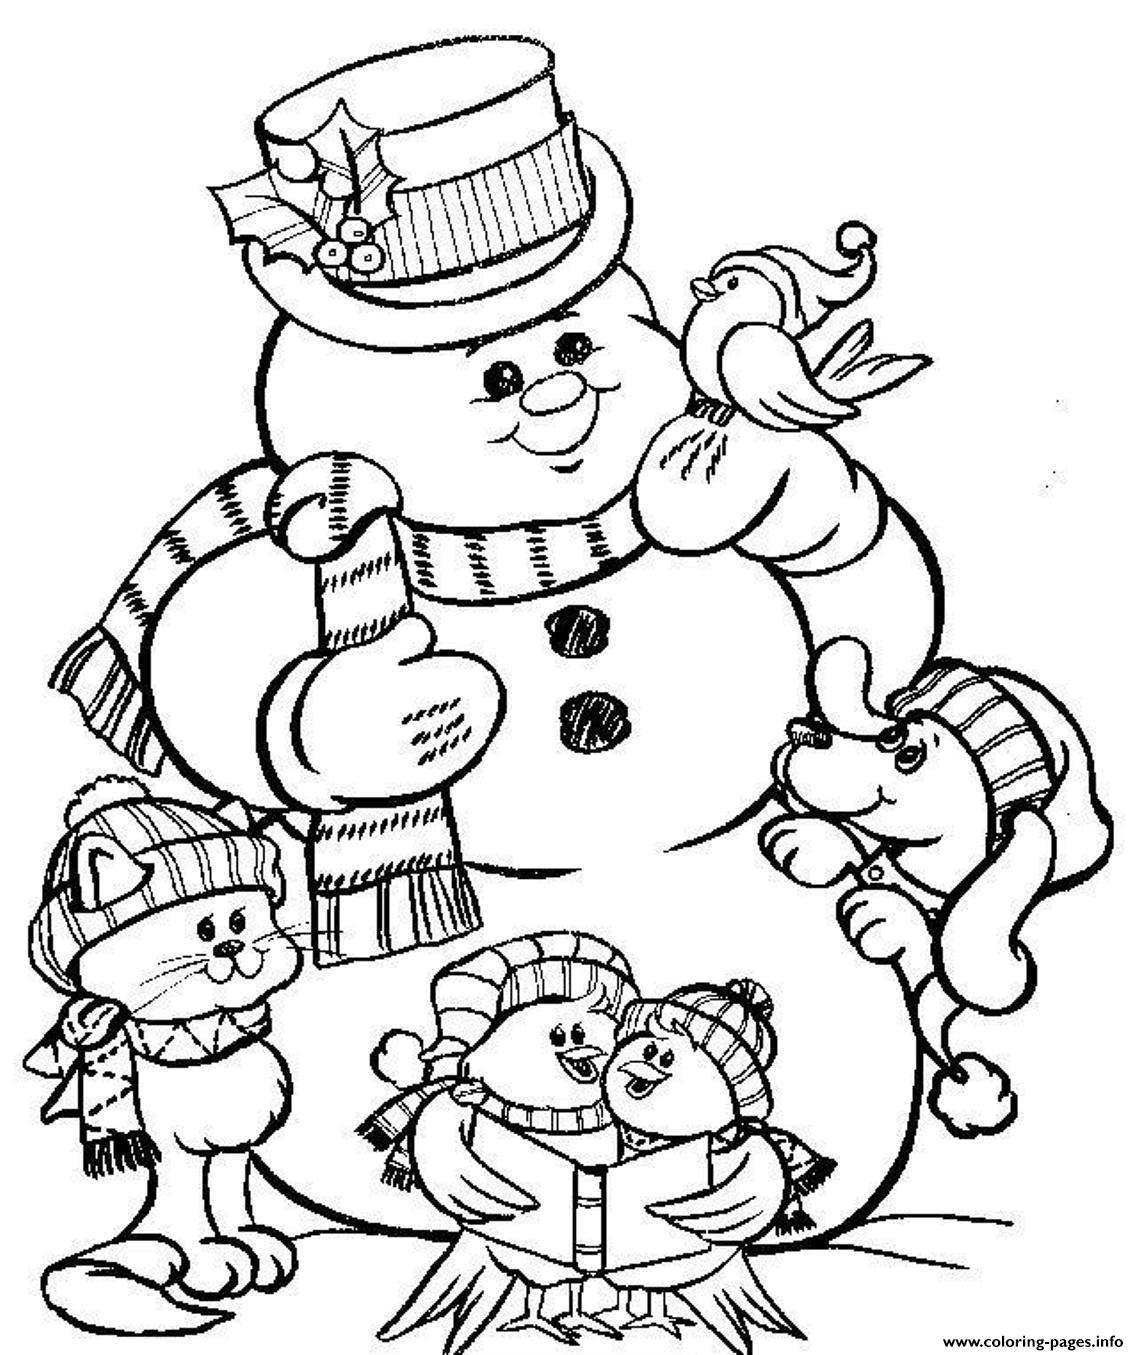 Snowman S To Print For Christmas426a Coloring Pages Printable